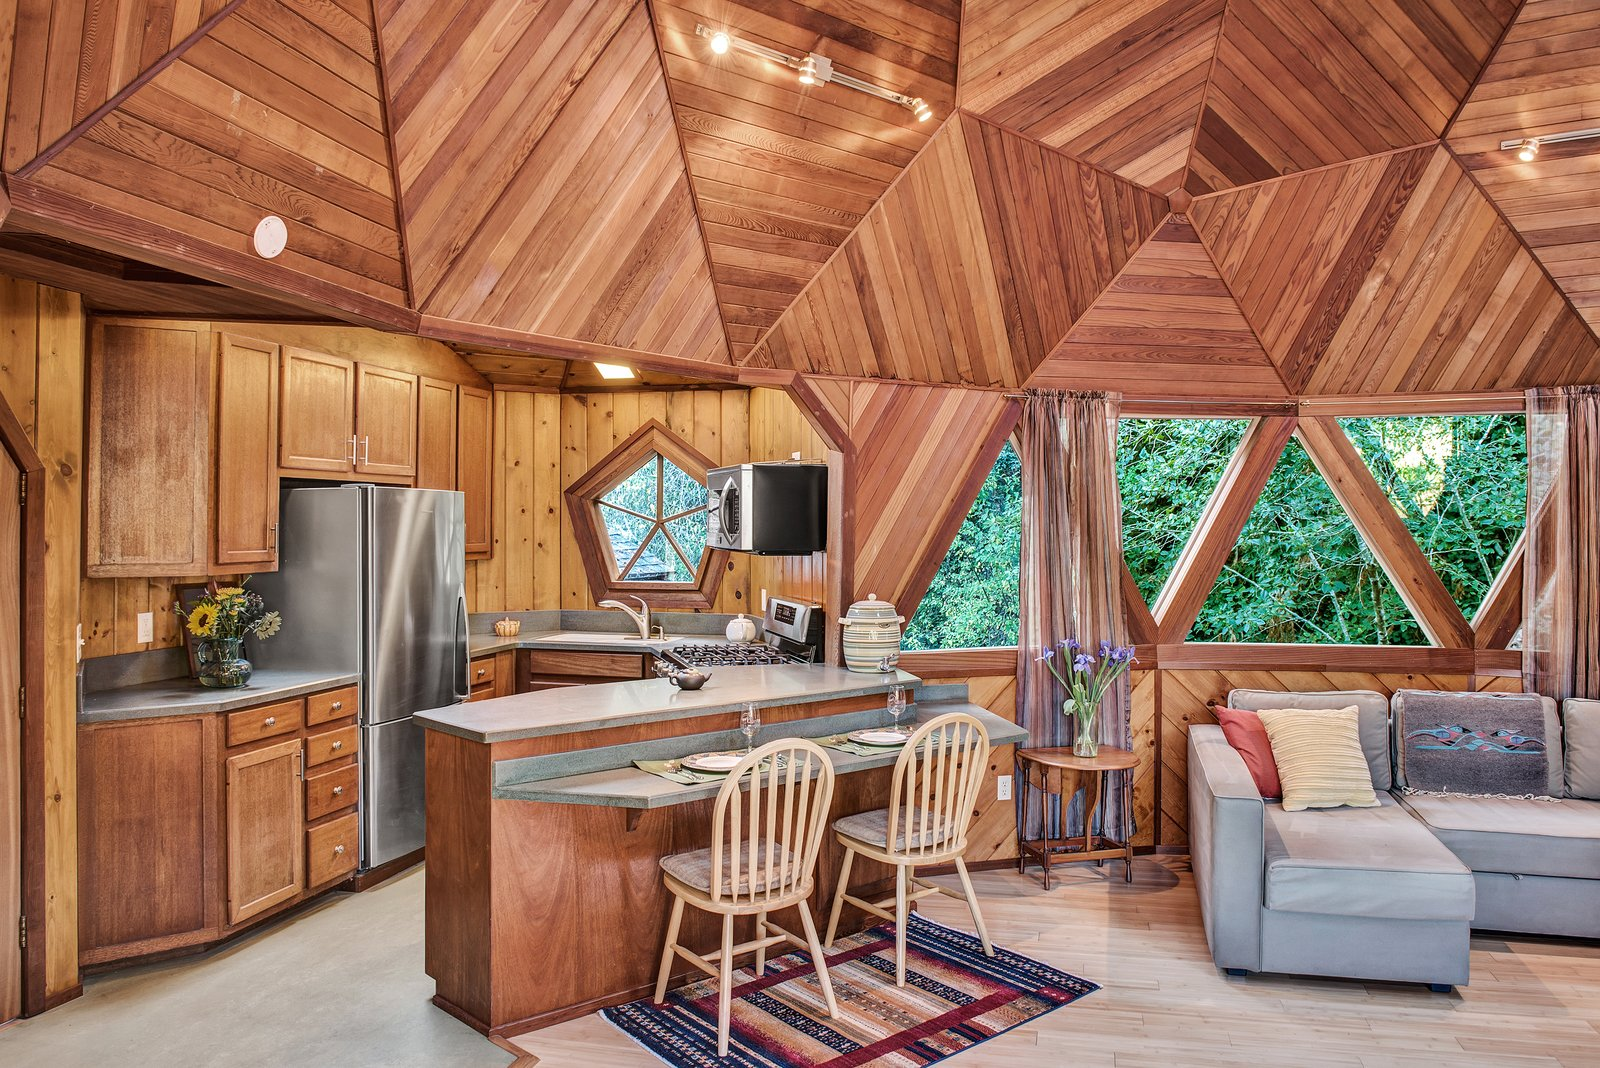 Kitchen, Laminate, Wood, Refrigerator, Light Hardwood, Microwave, Wood, Concrete, Ceiling, Range, Track, and Drop In Triangular windows let plenty of light in.  Best Kitchen Refrigerator Microwave Light Hardwood Track Wood Photos from A Geodesic Getaway in Northern California Asks $475K